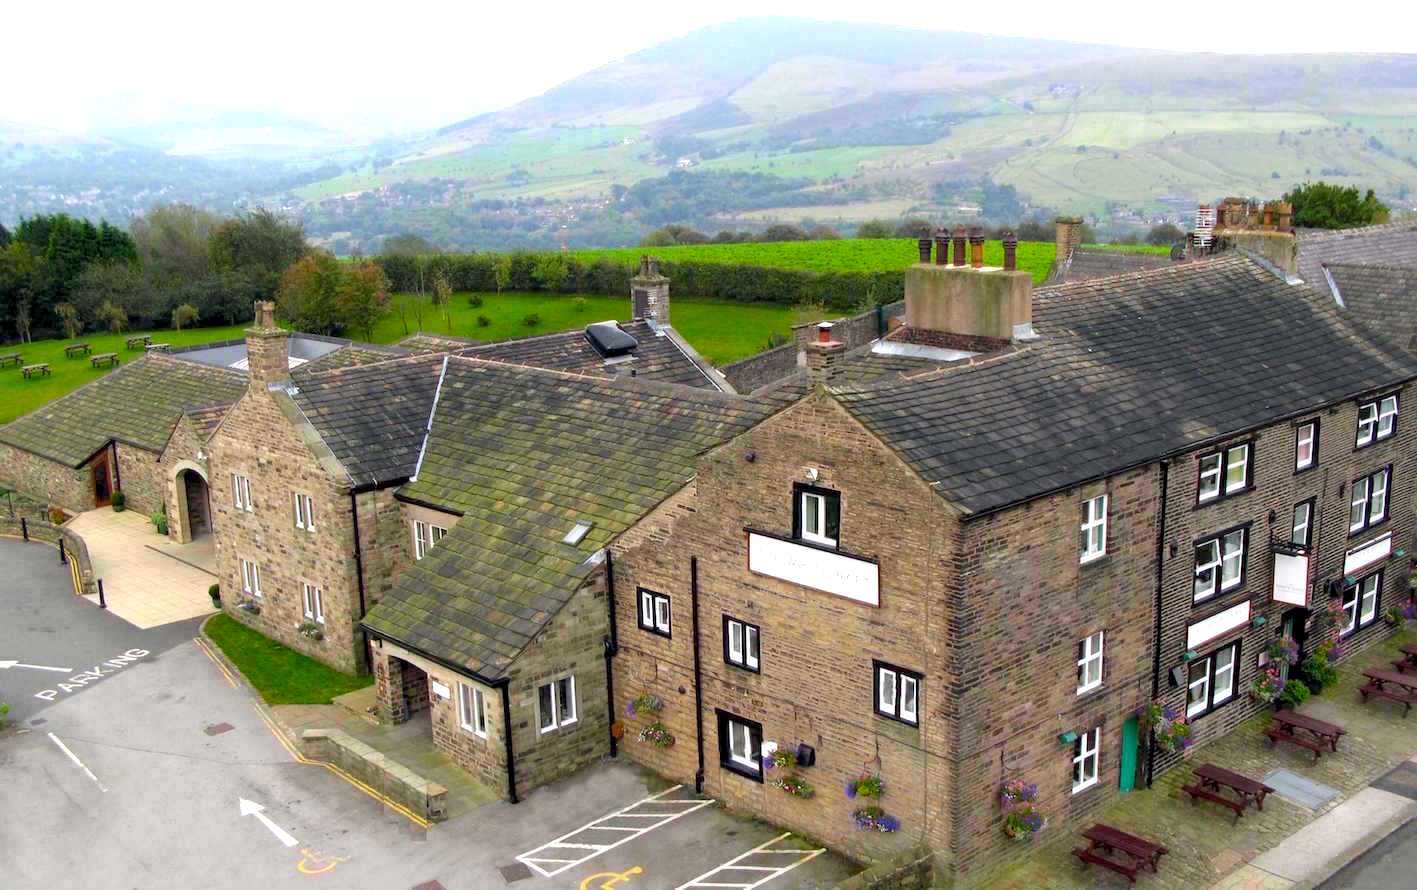 A pub with a view: The White Hart at Lydgate is 700 feet above sea level on the edge of Saddleworth Moor